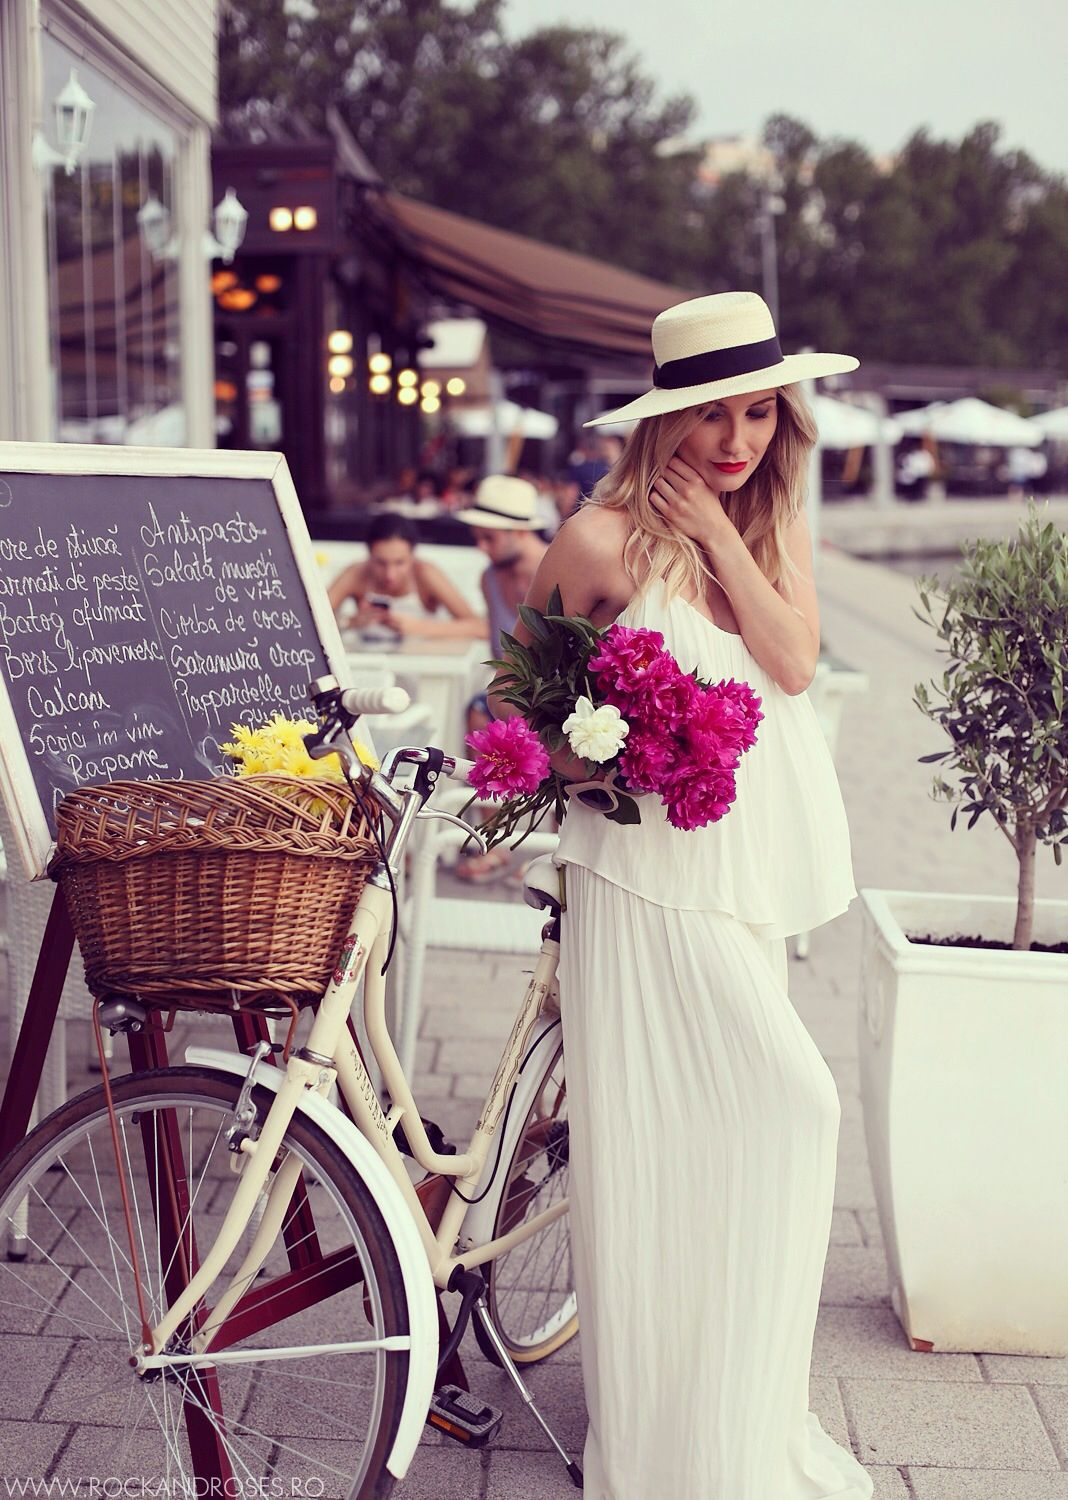 Sooo lifestyle but love it - from the hat and maxi dress to the flowers, bike w/basket and chalkboard there is a lot going on but cute. Nice haze unifies the feel of the picture.